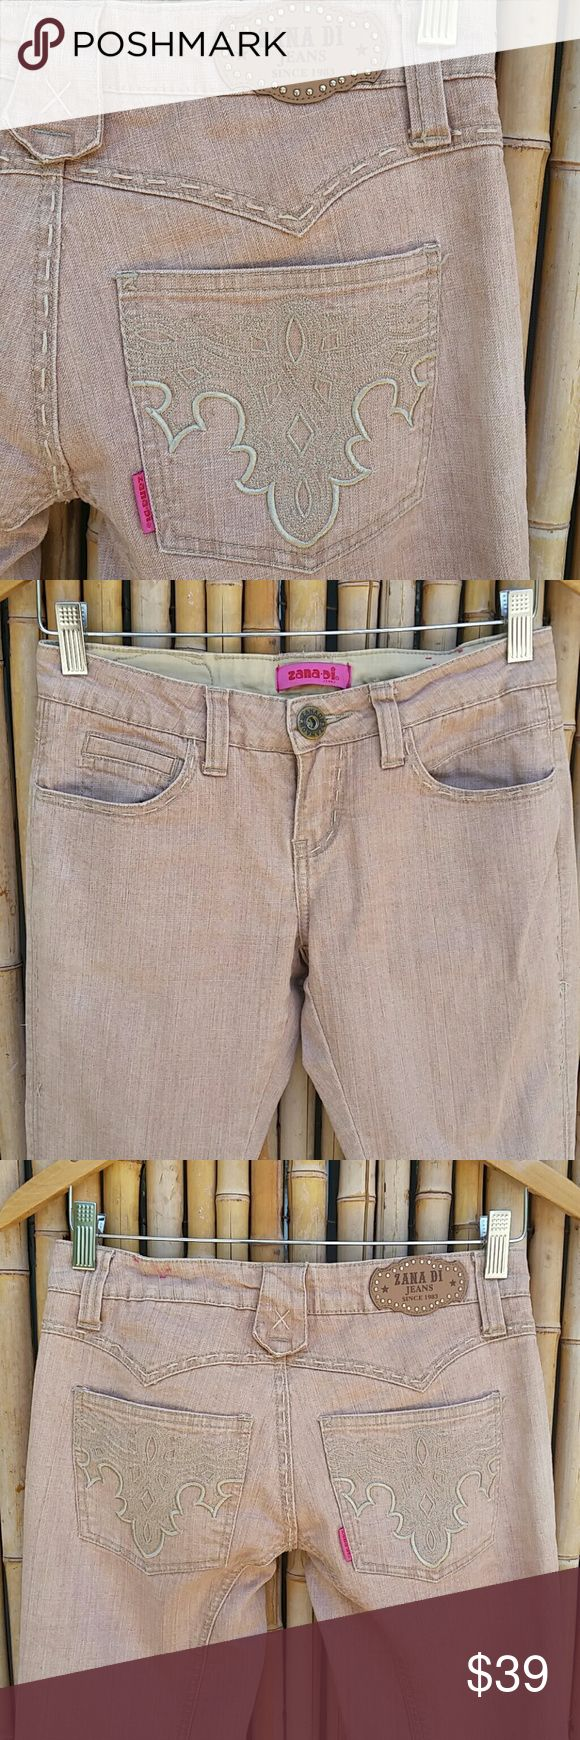 "ZANA•DI JEANS Washed Peach Bootcut Denim! Beautiful color, top stitching,  embroidered back pockets, 5 pocket styling, unique details!   Label size 3 Waistband 14.5"" Inseam 31"" Rise 7.5"" 90% cotton /9% polyester /1% spandex  Note: small bleach spot on leg and some top stitching coming loose. Not noticeable when being worn but I wanted to note it.  💲Bundle & Save!💲😀 🚫No Trades/No Holds 🙄😘  🔘Use OFFER button to negotiate👍🤑 ❔Please Ask ?'s BEFORE you Buy🤔😃 💕Thank you for shopping my…"